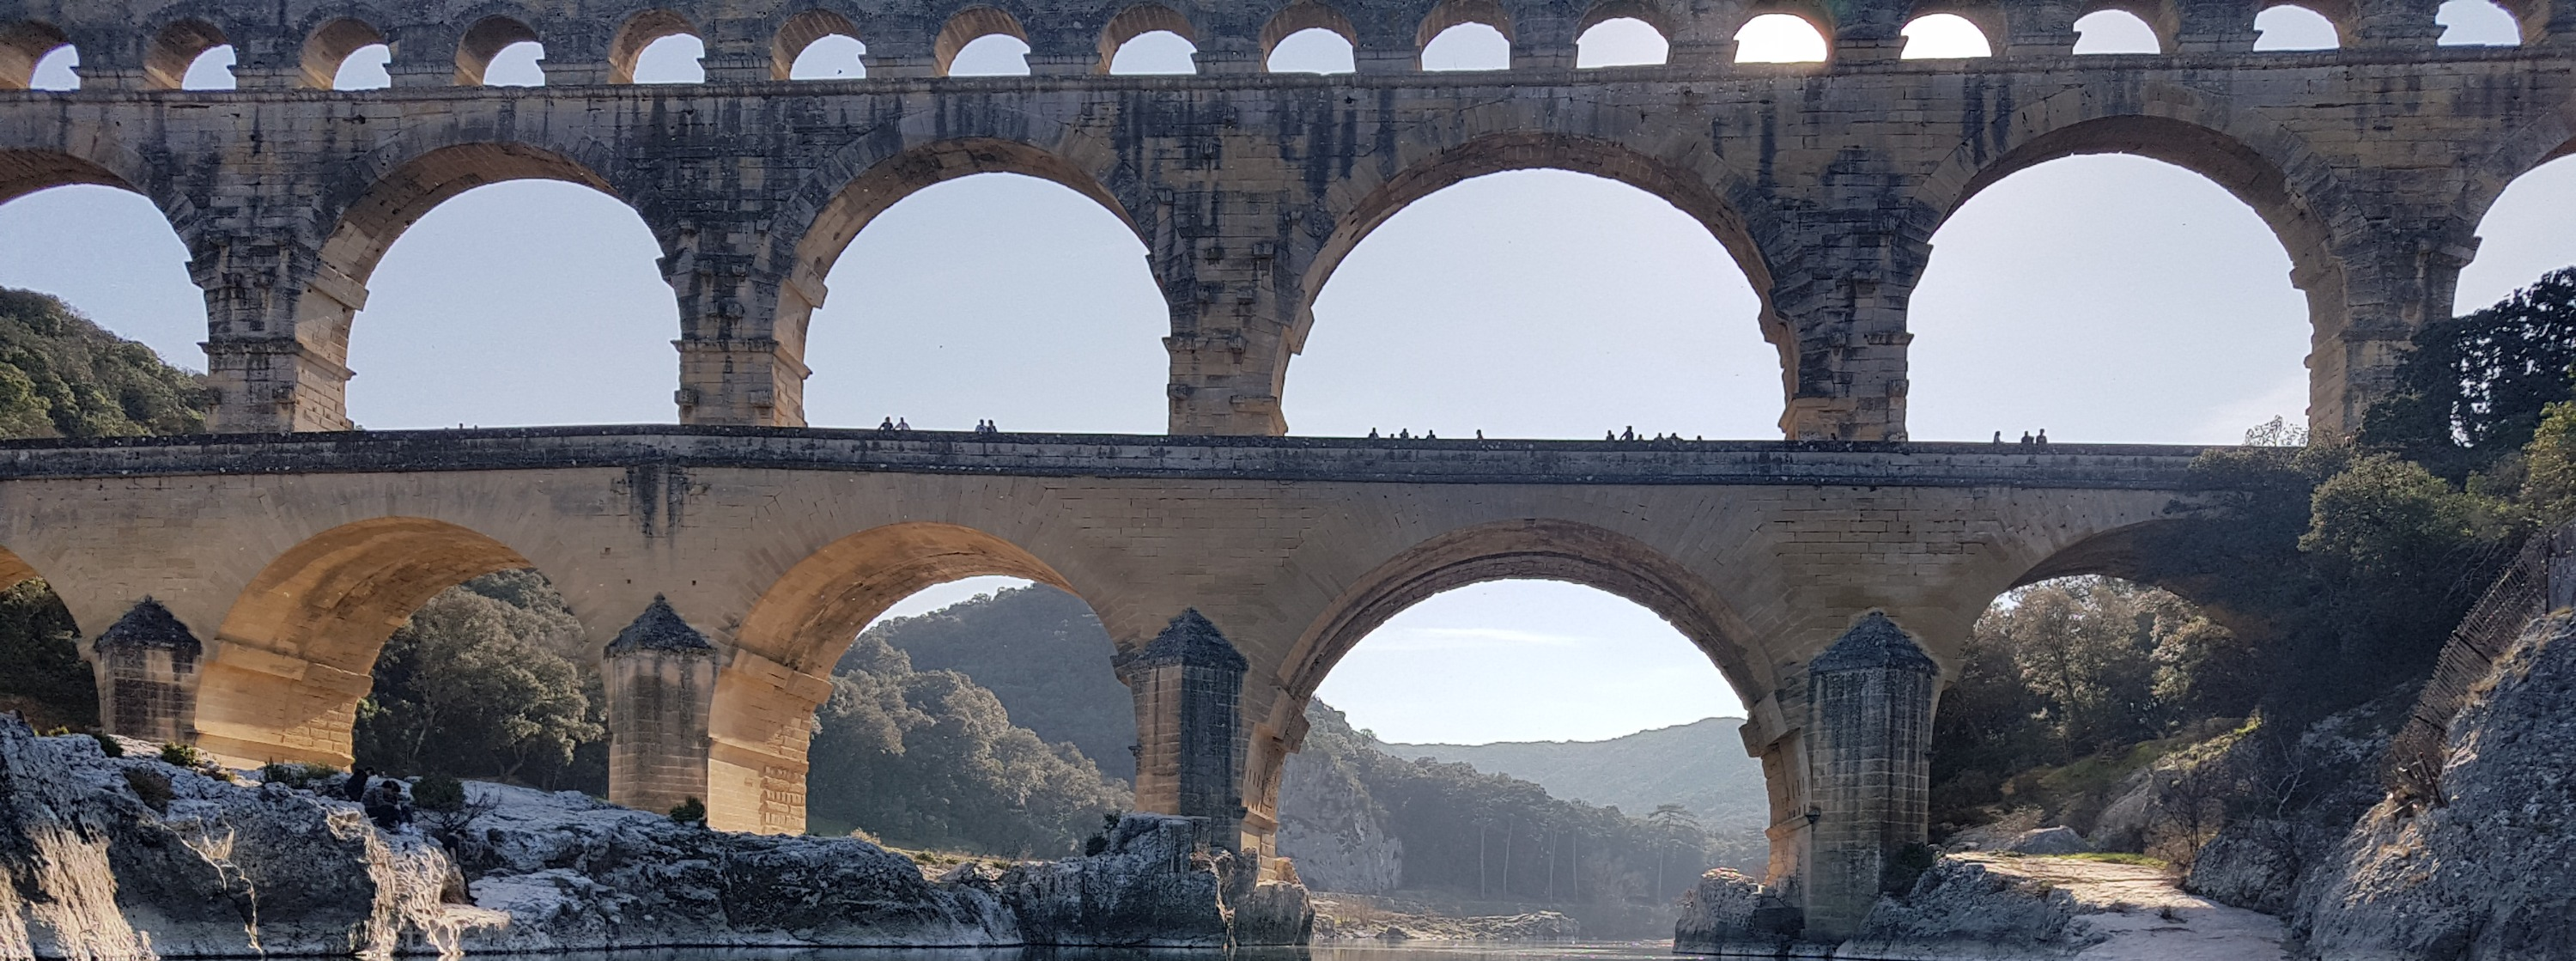 Beautiful canoe ride at the Pont-du-Gard during your French immersion in France